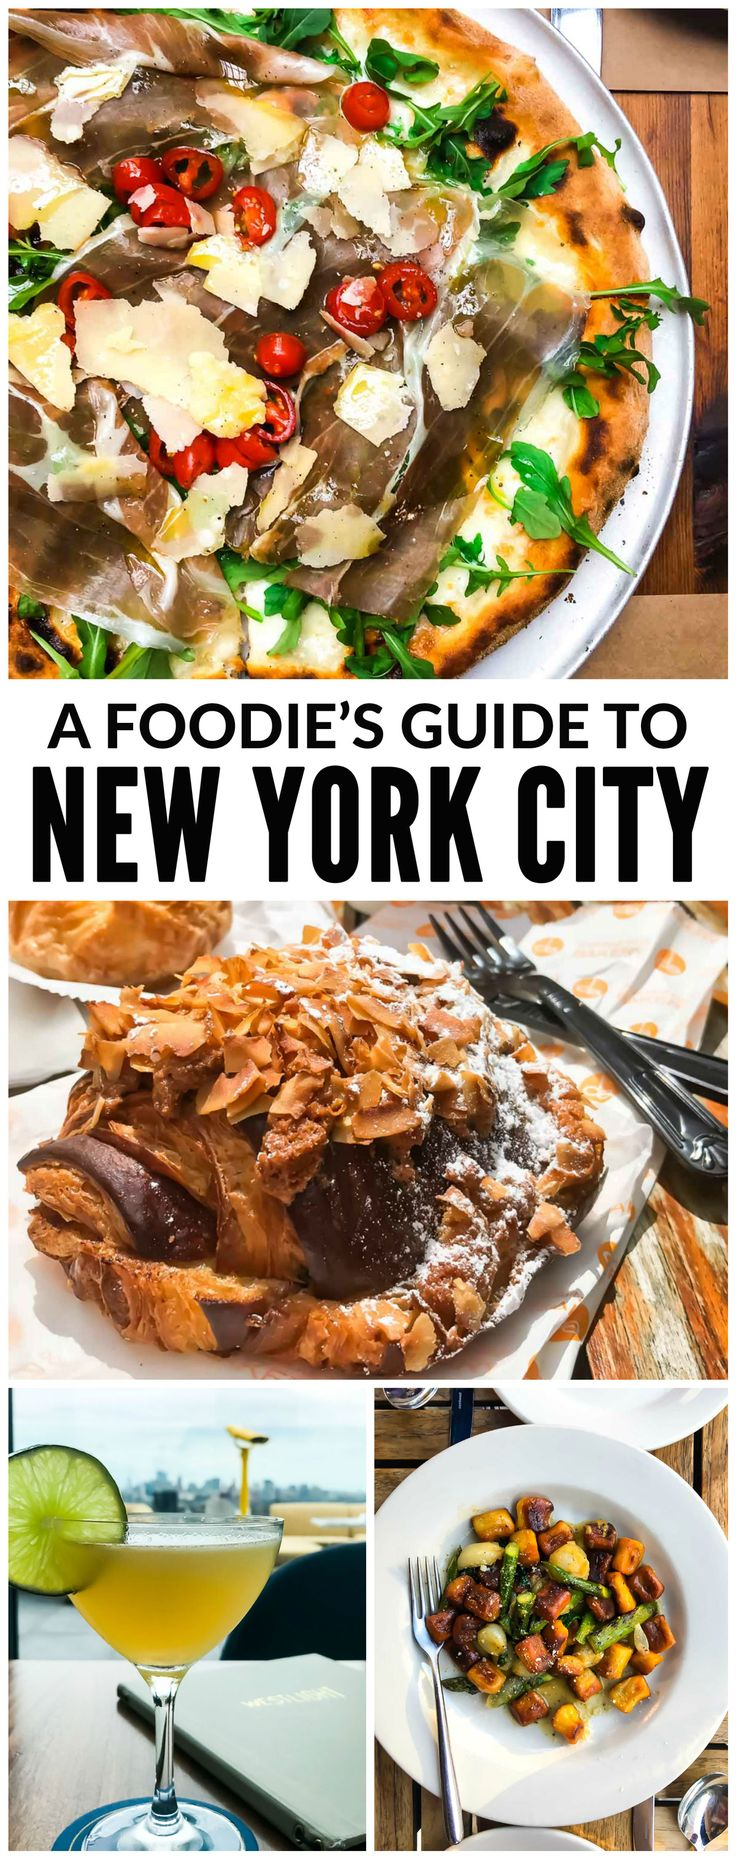 The ULTIMATE New York Guide for foodies! Top restaurants, bakeries, brunch spots, rooftop bars, and more. Something for every taste and budget! Read the post at wellplated.com | @wellplated